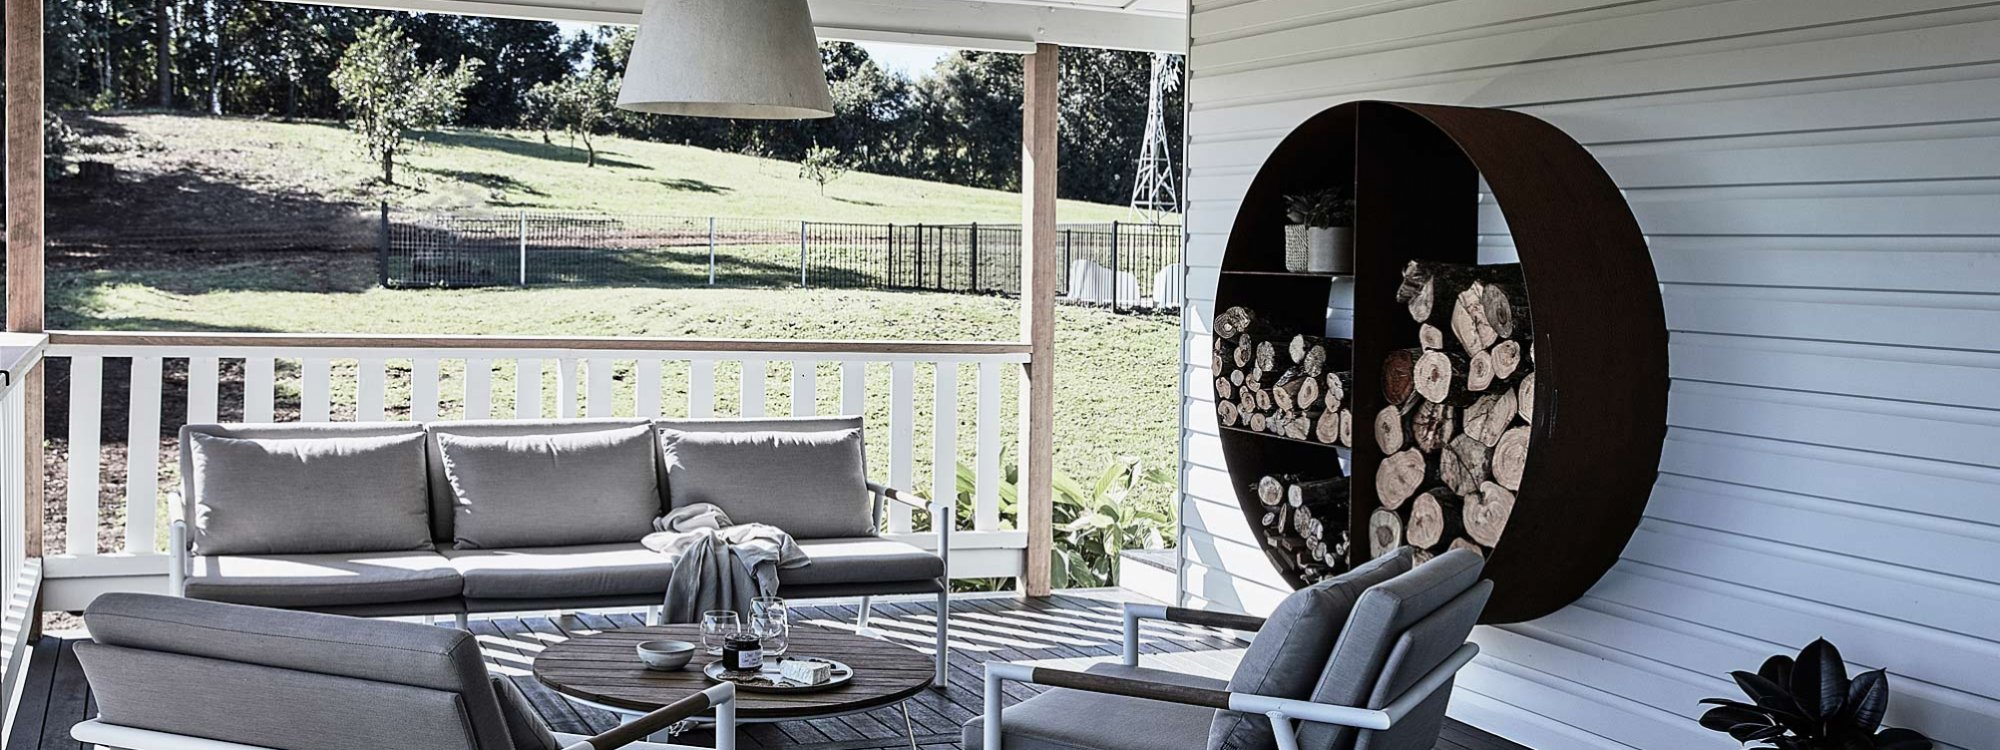 Bennys Cottage - Byron Bay - Real Living Shoot Outdoor Chairs and Timber